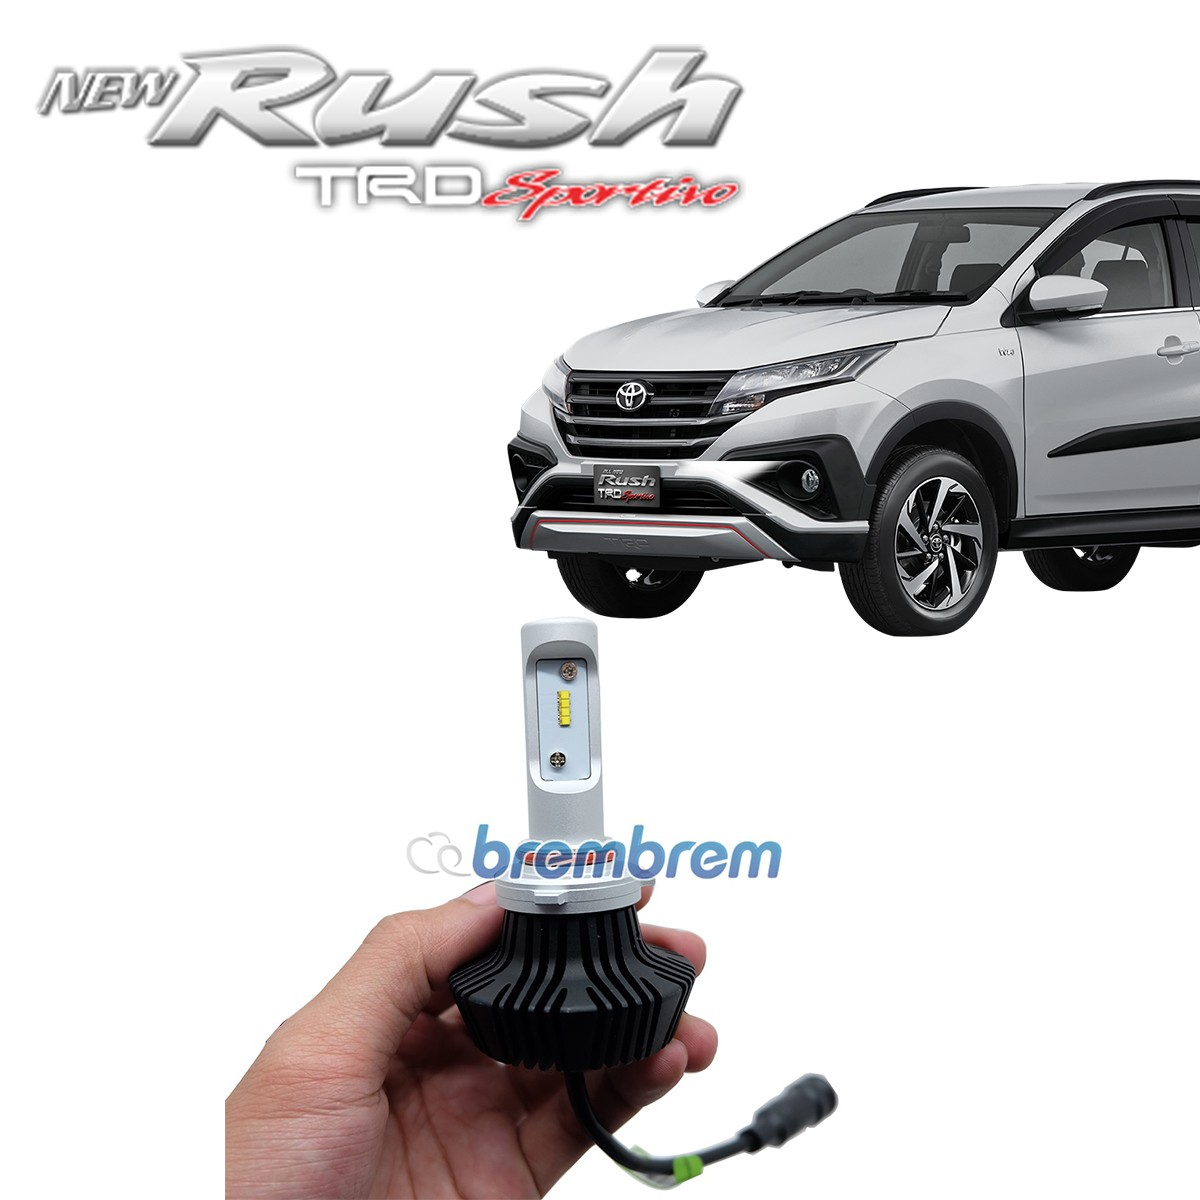 HIRO i-PRECISION HB3 (9005) - LAMPU LED MOBIL TOYOTA ALL NEW RUSH